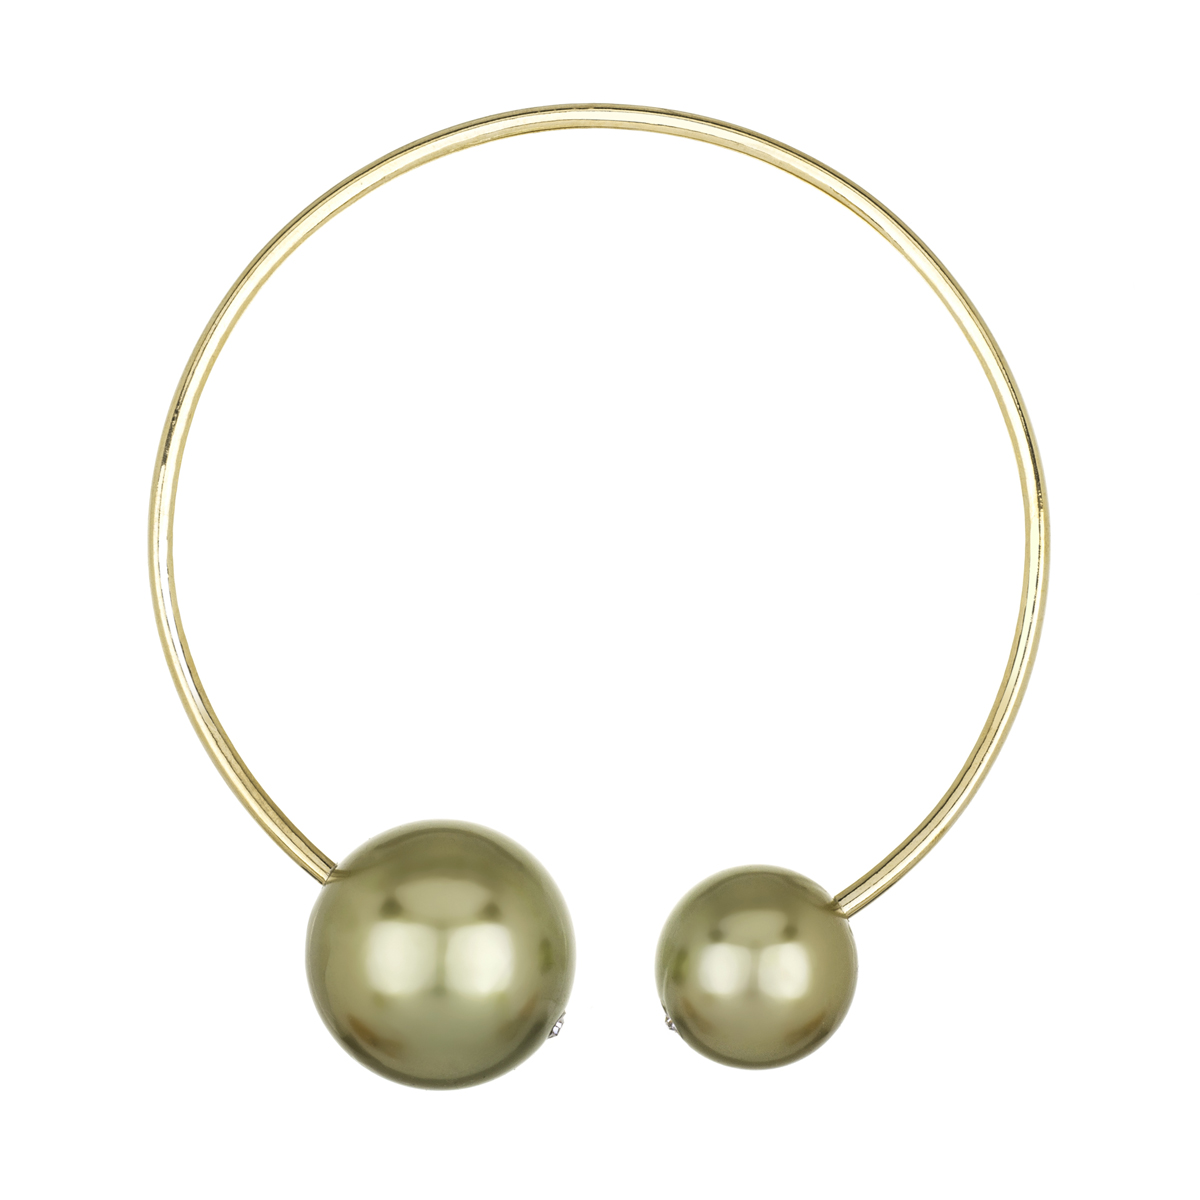 Nyoka's Designer Style Double Goldtone Imitation Pearl Collar Necklace  Roll Off Image To Close Zoom Window